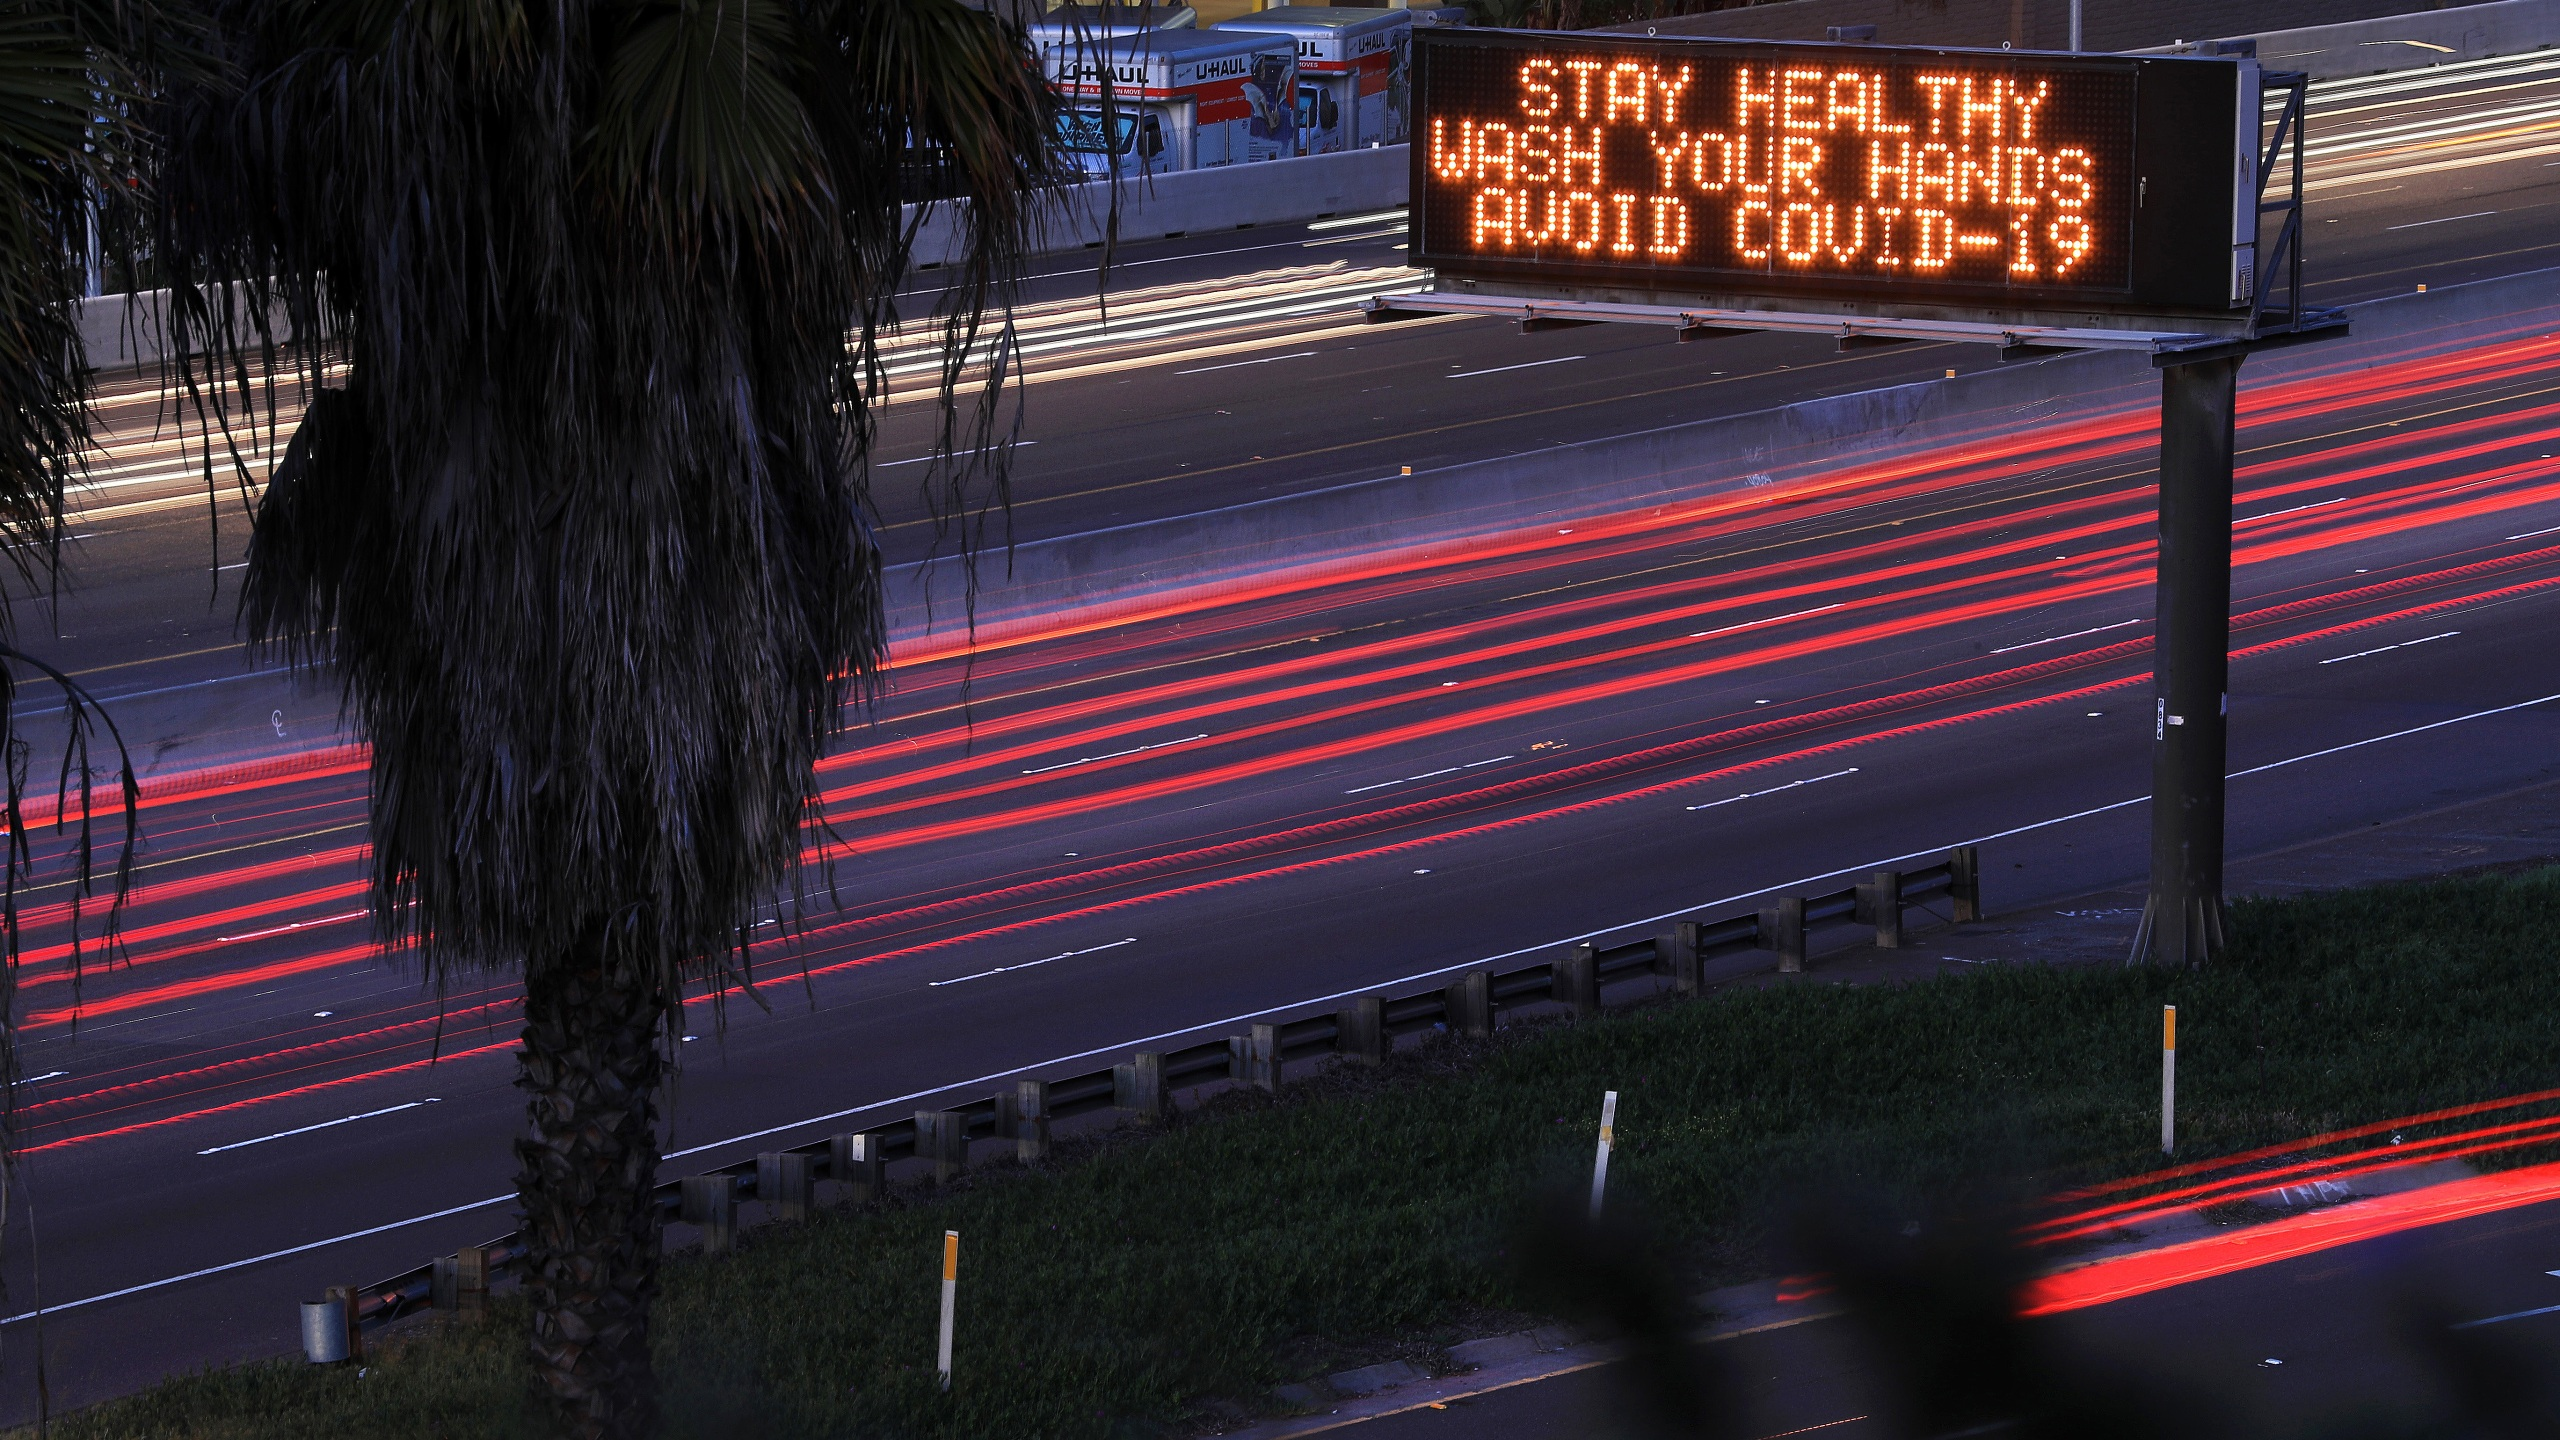 Motorists travel on Interstate 8 in San Diego as a sign encourages hand washing on March 15, 2020. (Credit: Sean M. Haffey / Getty Images)